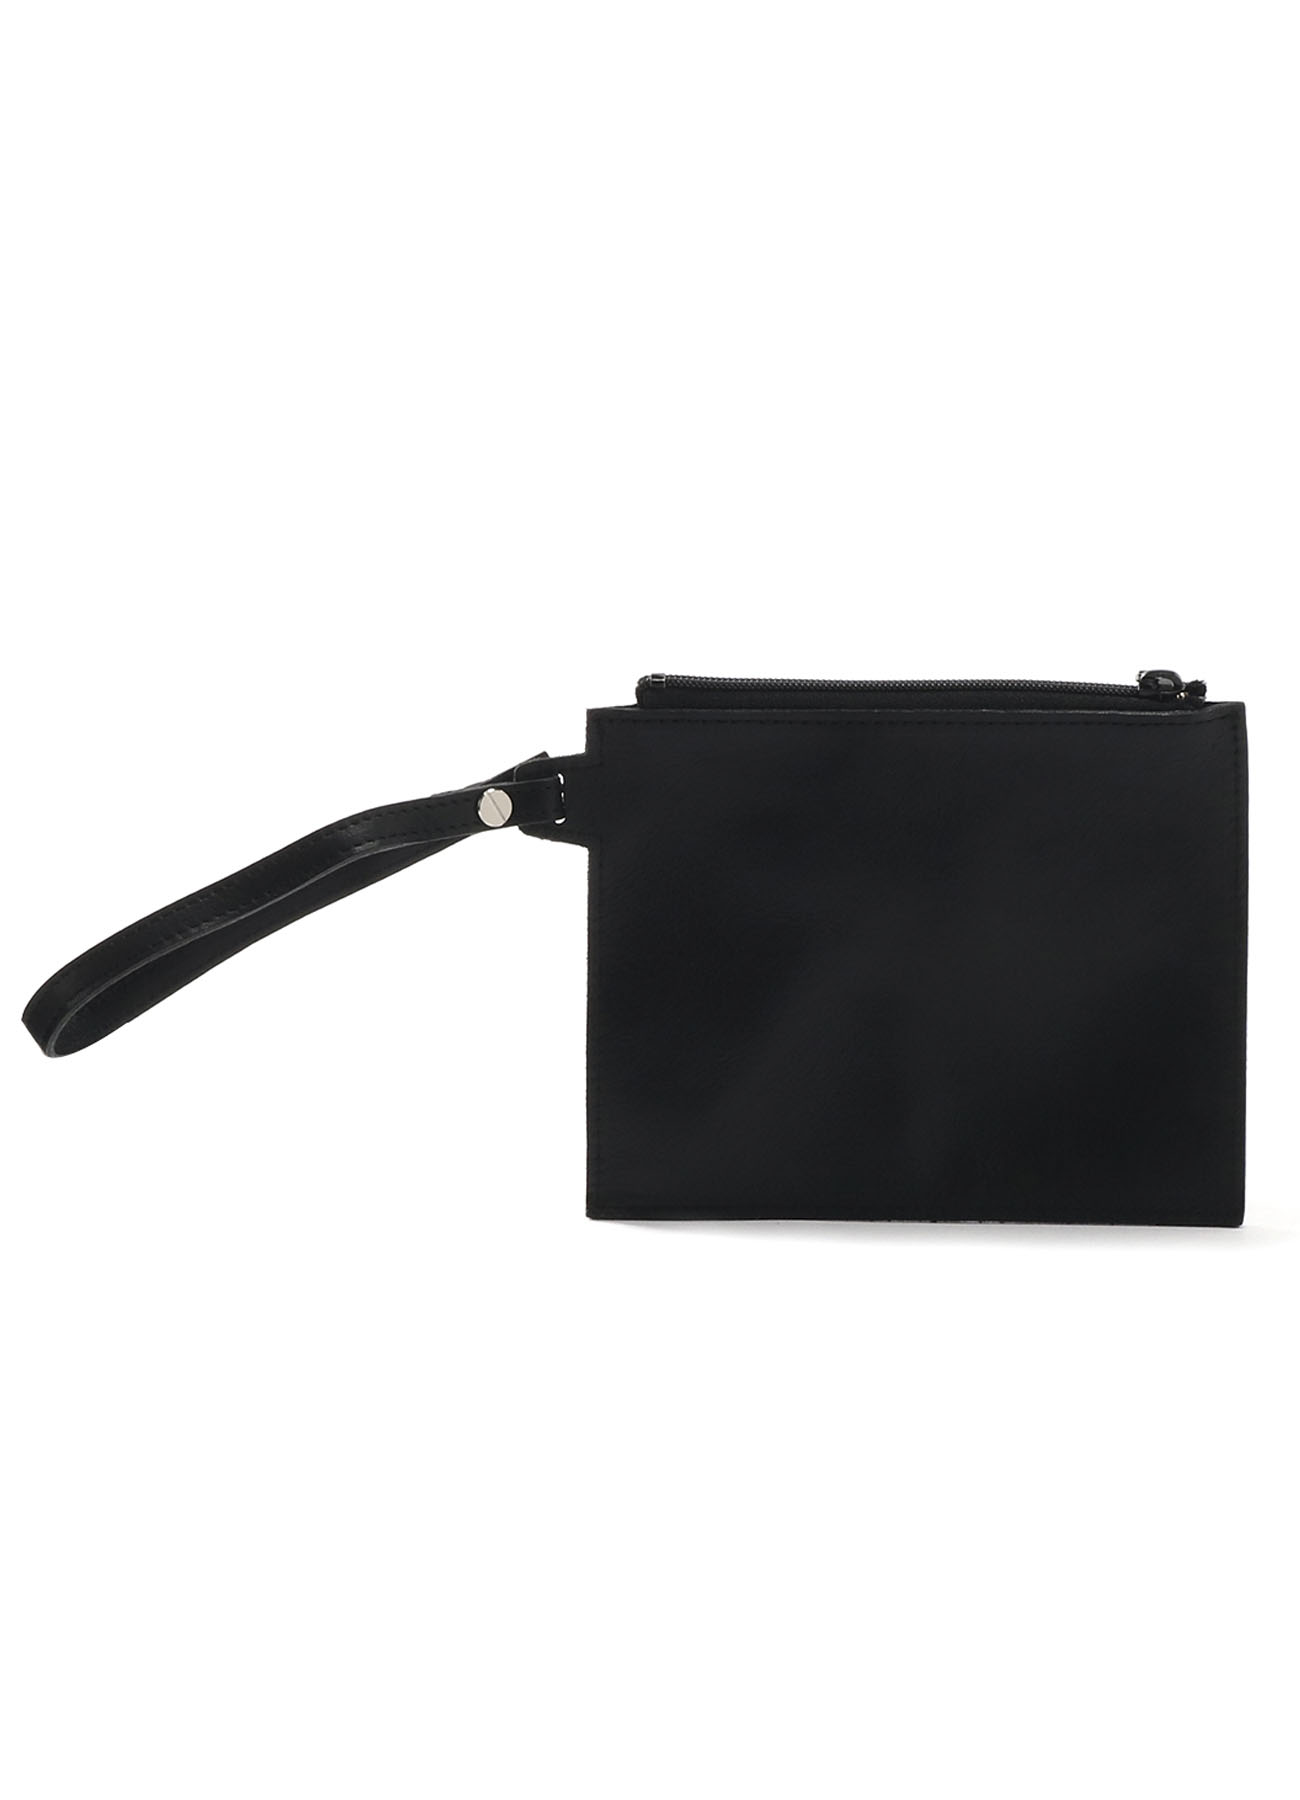 KAYONAKAMURAbyY's FLAX COW LEATHER COMBI REVERSIBLE PURSE POCHETTE